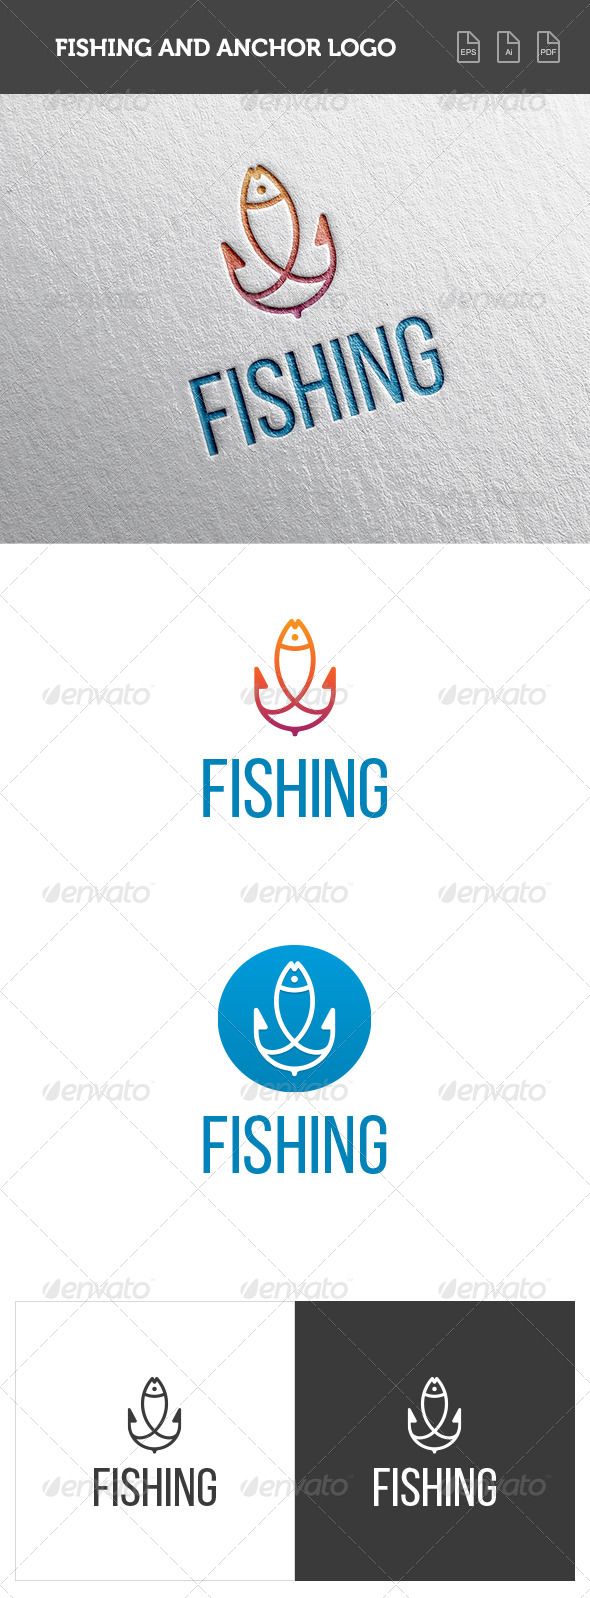 GraphicRiver Fishing and Anchor Logo 8391490